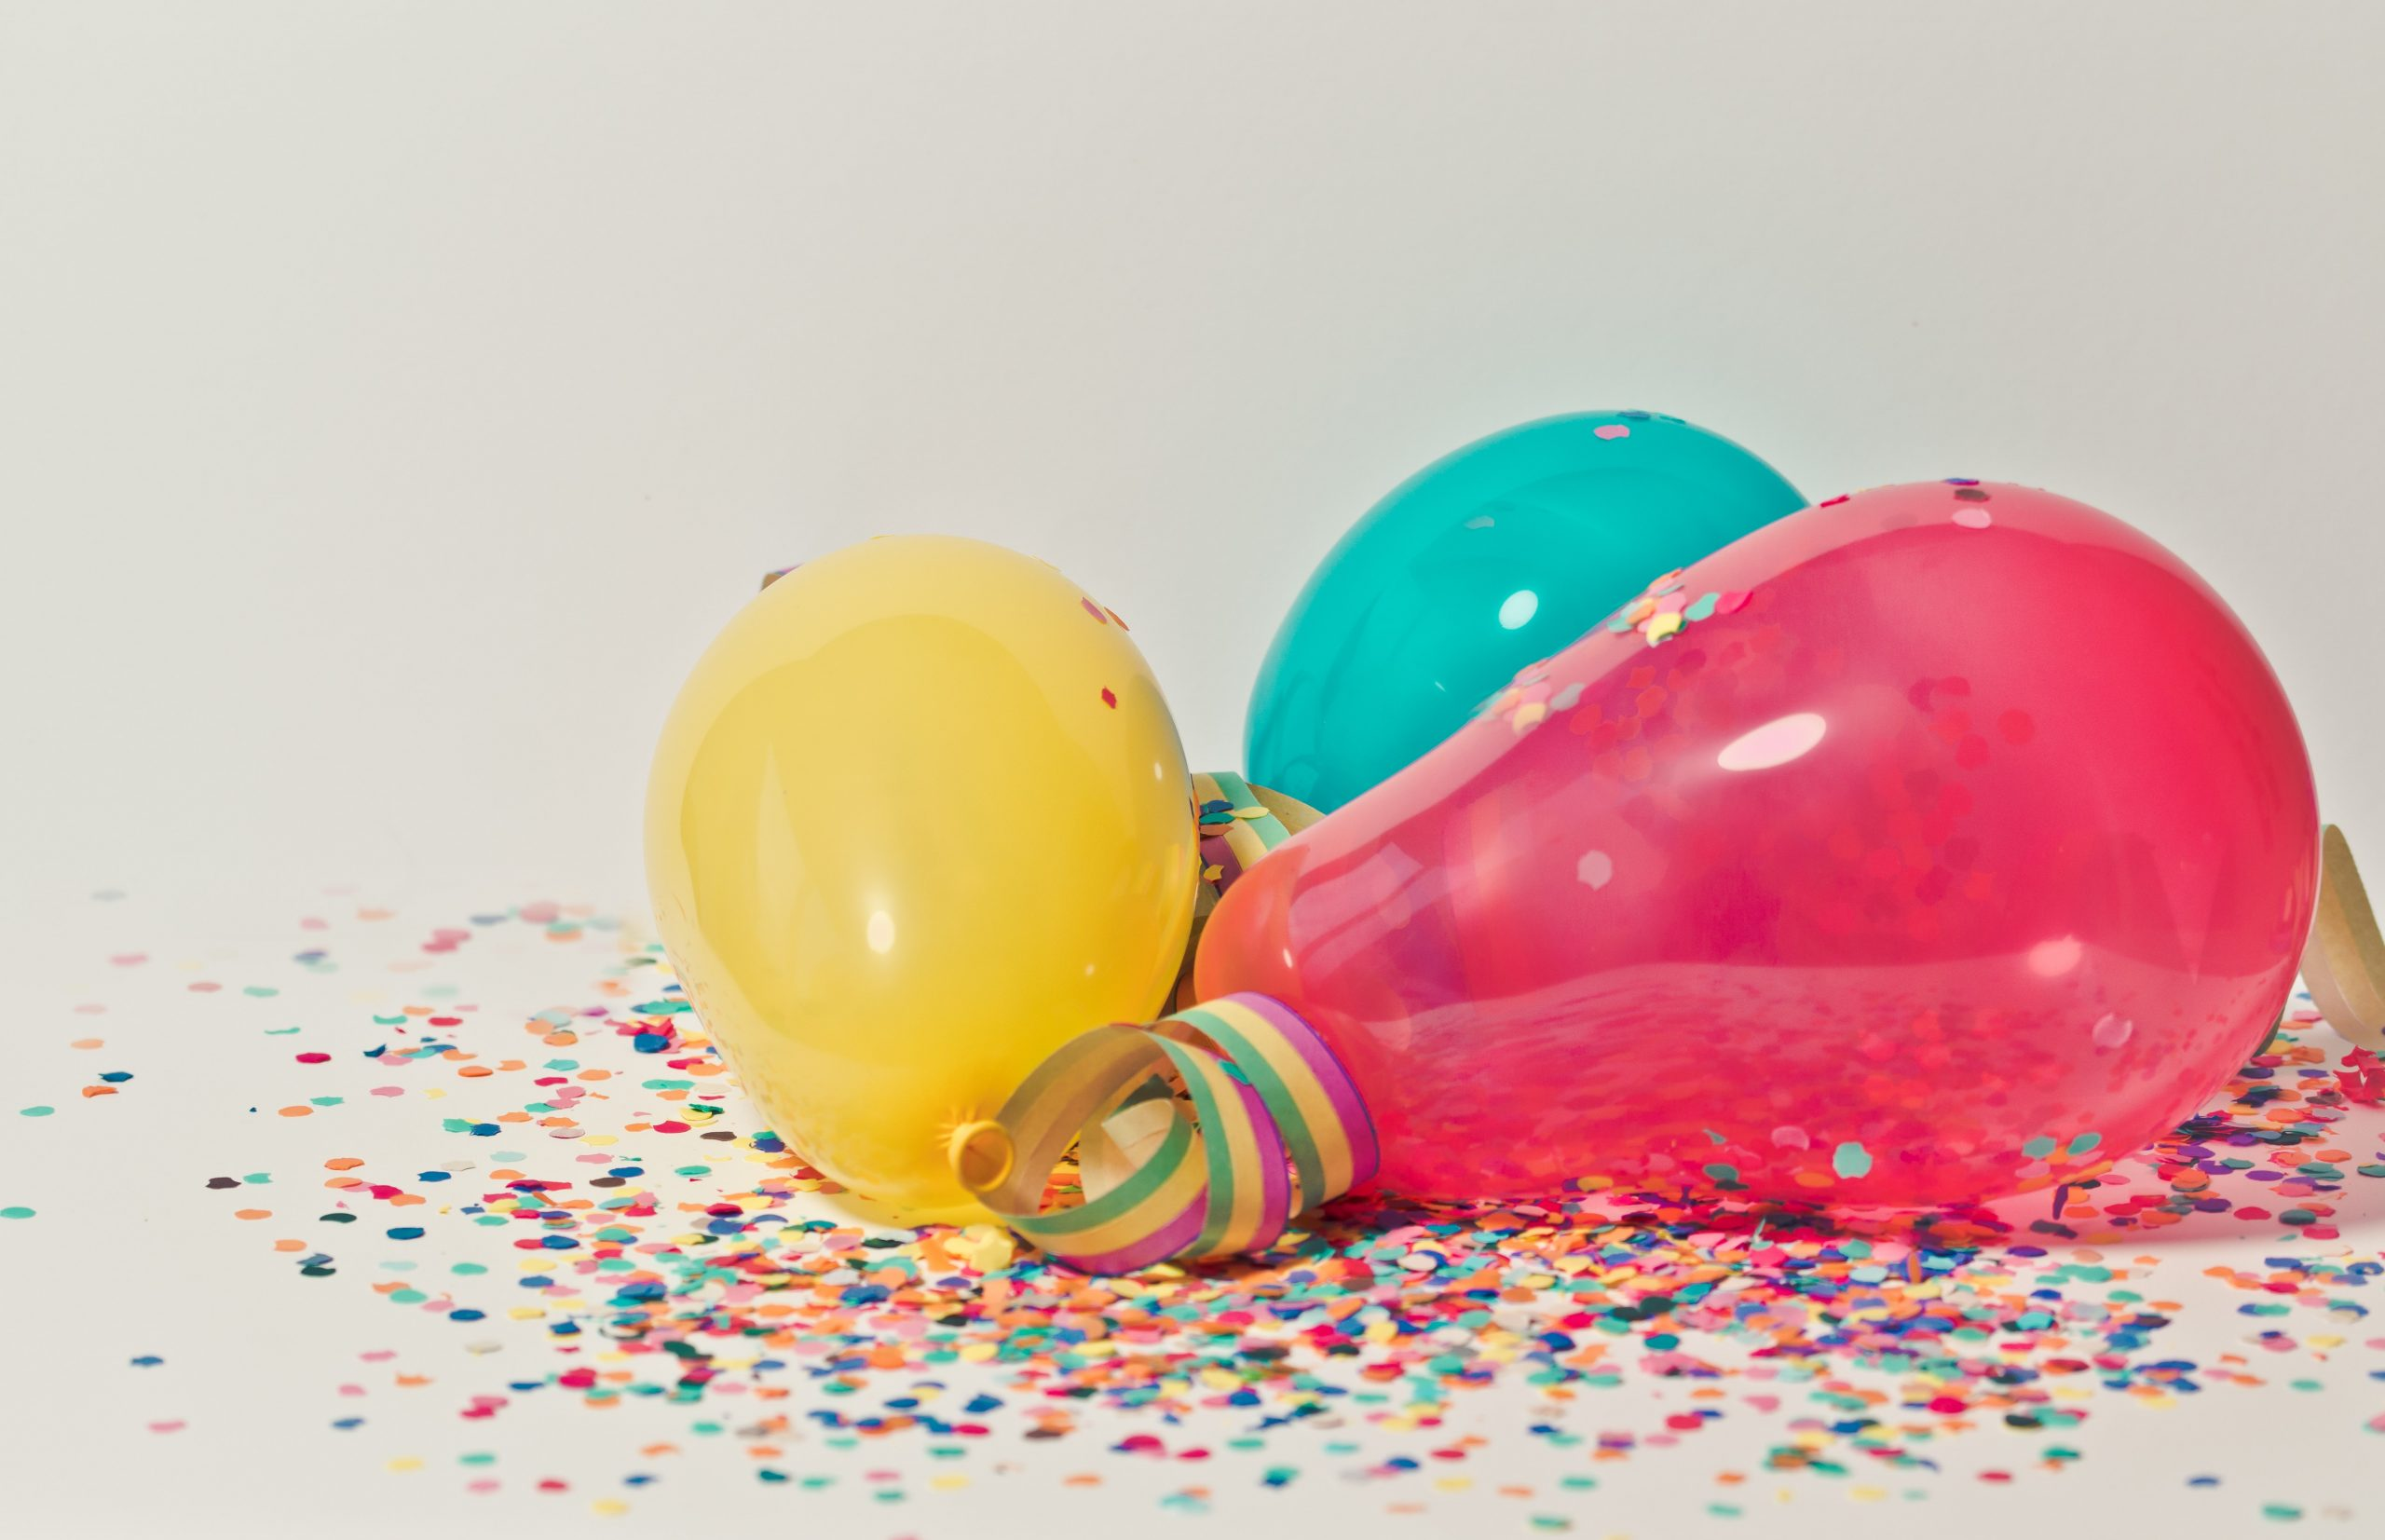 yellow, teal, and hot pink balloons rest on confetti and streamers